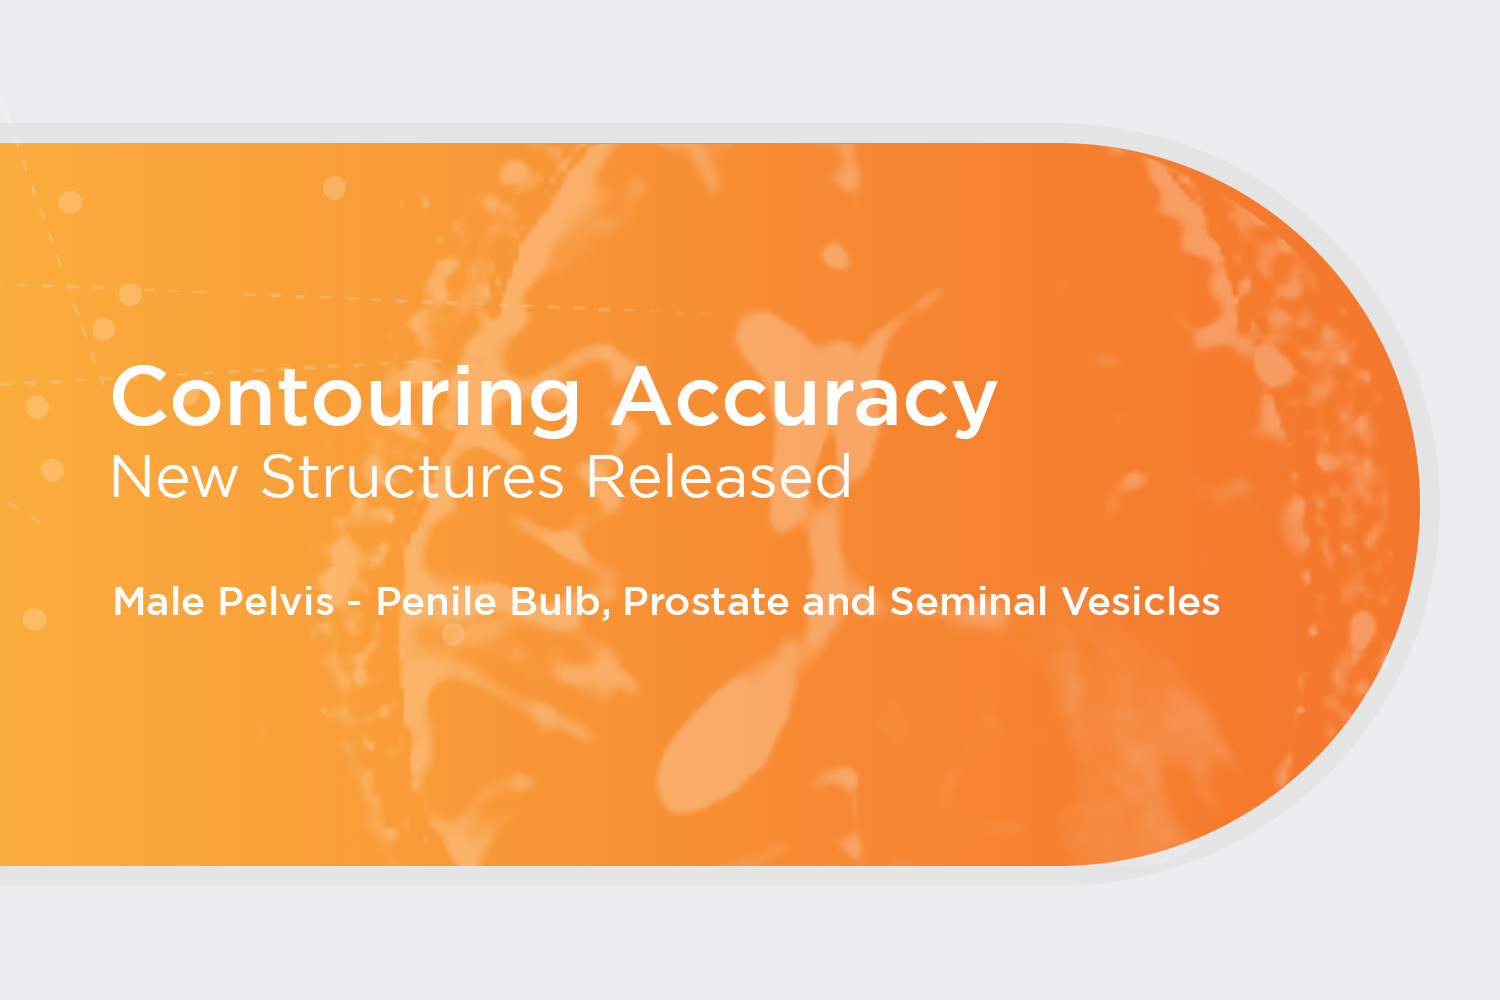 Announcing New Structure Release: Male Pelvis – Penile Bulb, Prostate and Seminal Vesicles